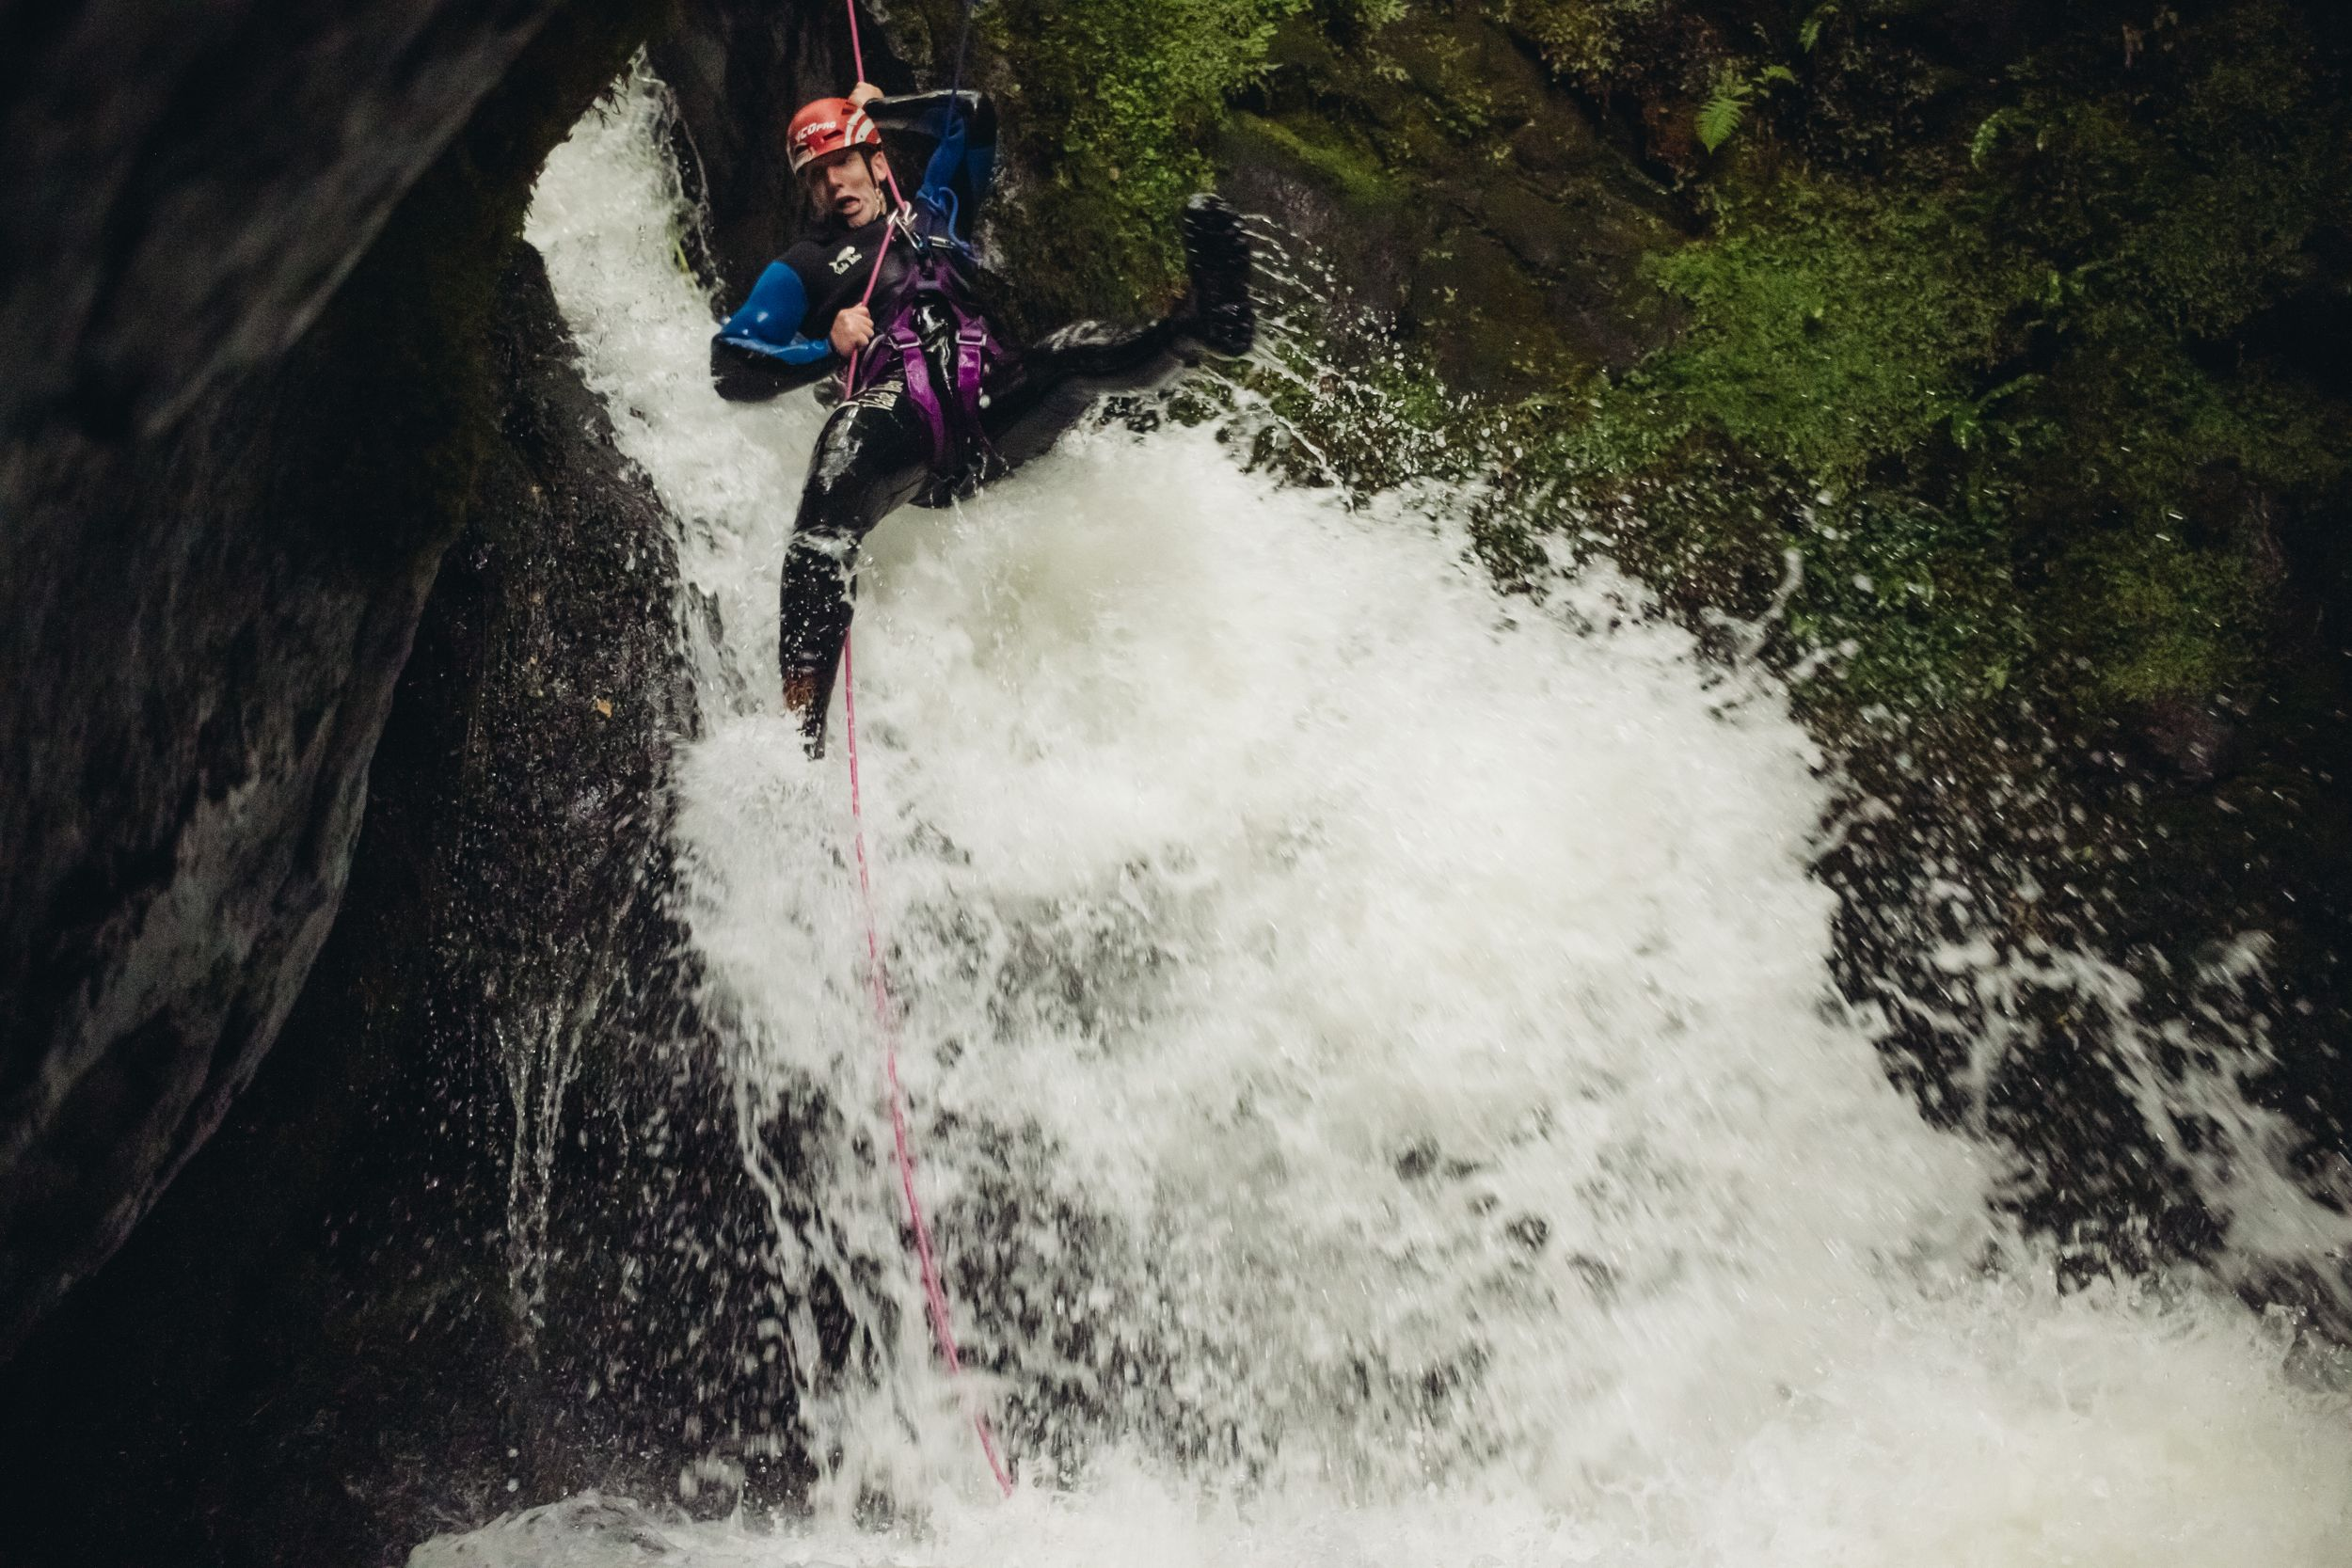 waterfall abseil canyoning dollar glen scotland photography